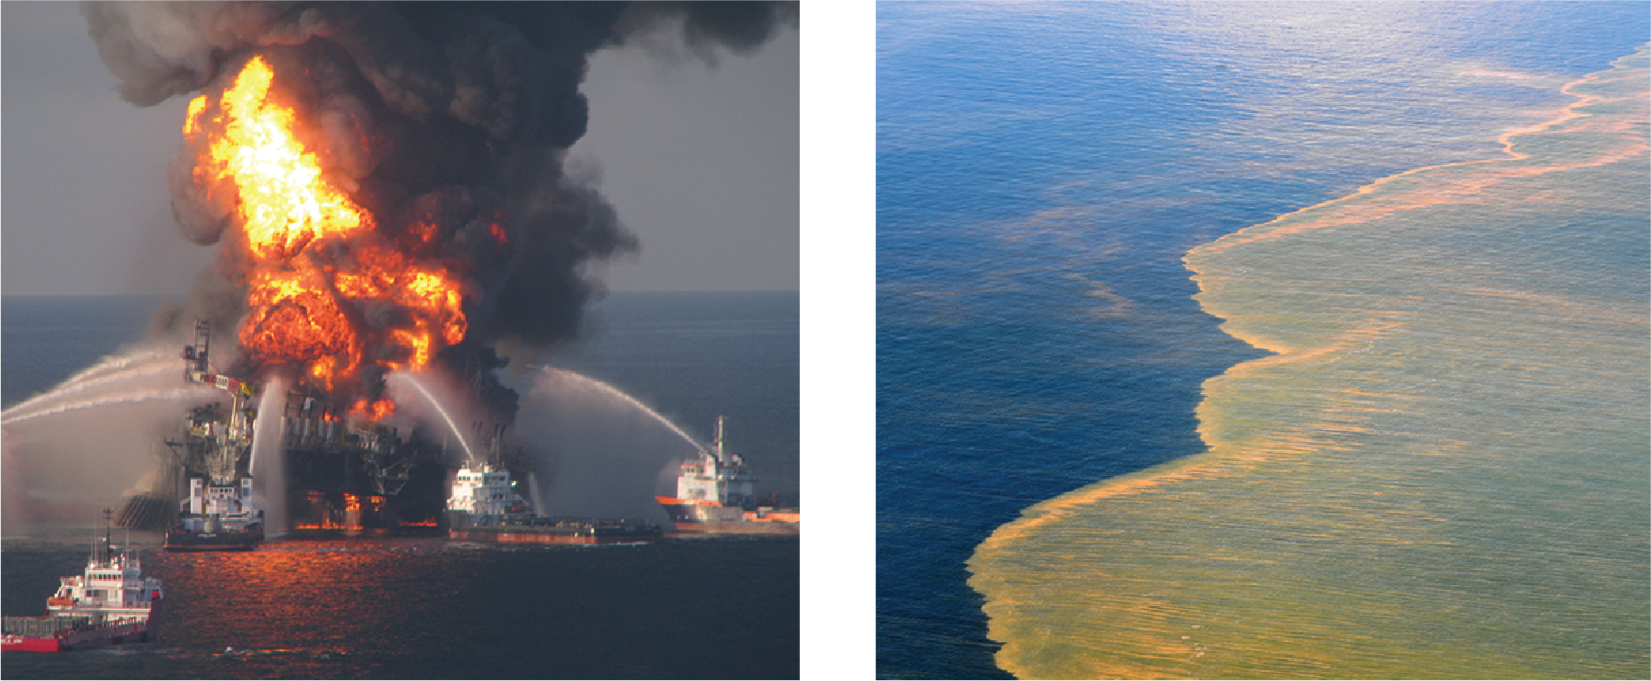 Left: The Deepwater Horizon oil rig on fire, surrounded with multiple ships spraying suppression materials. Right: Oil floating on the surface of water in the Gulf of Mexico.